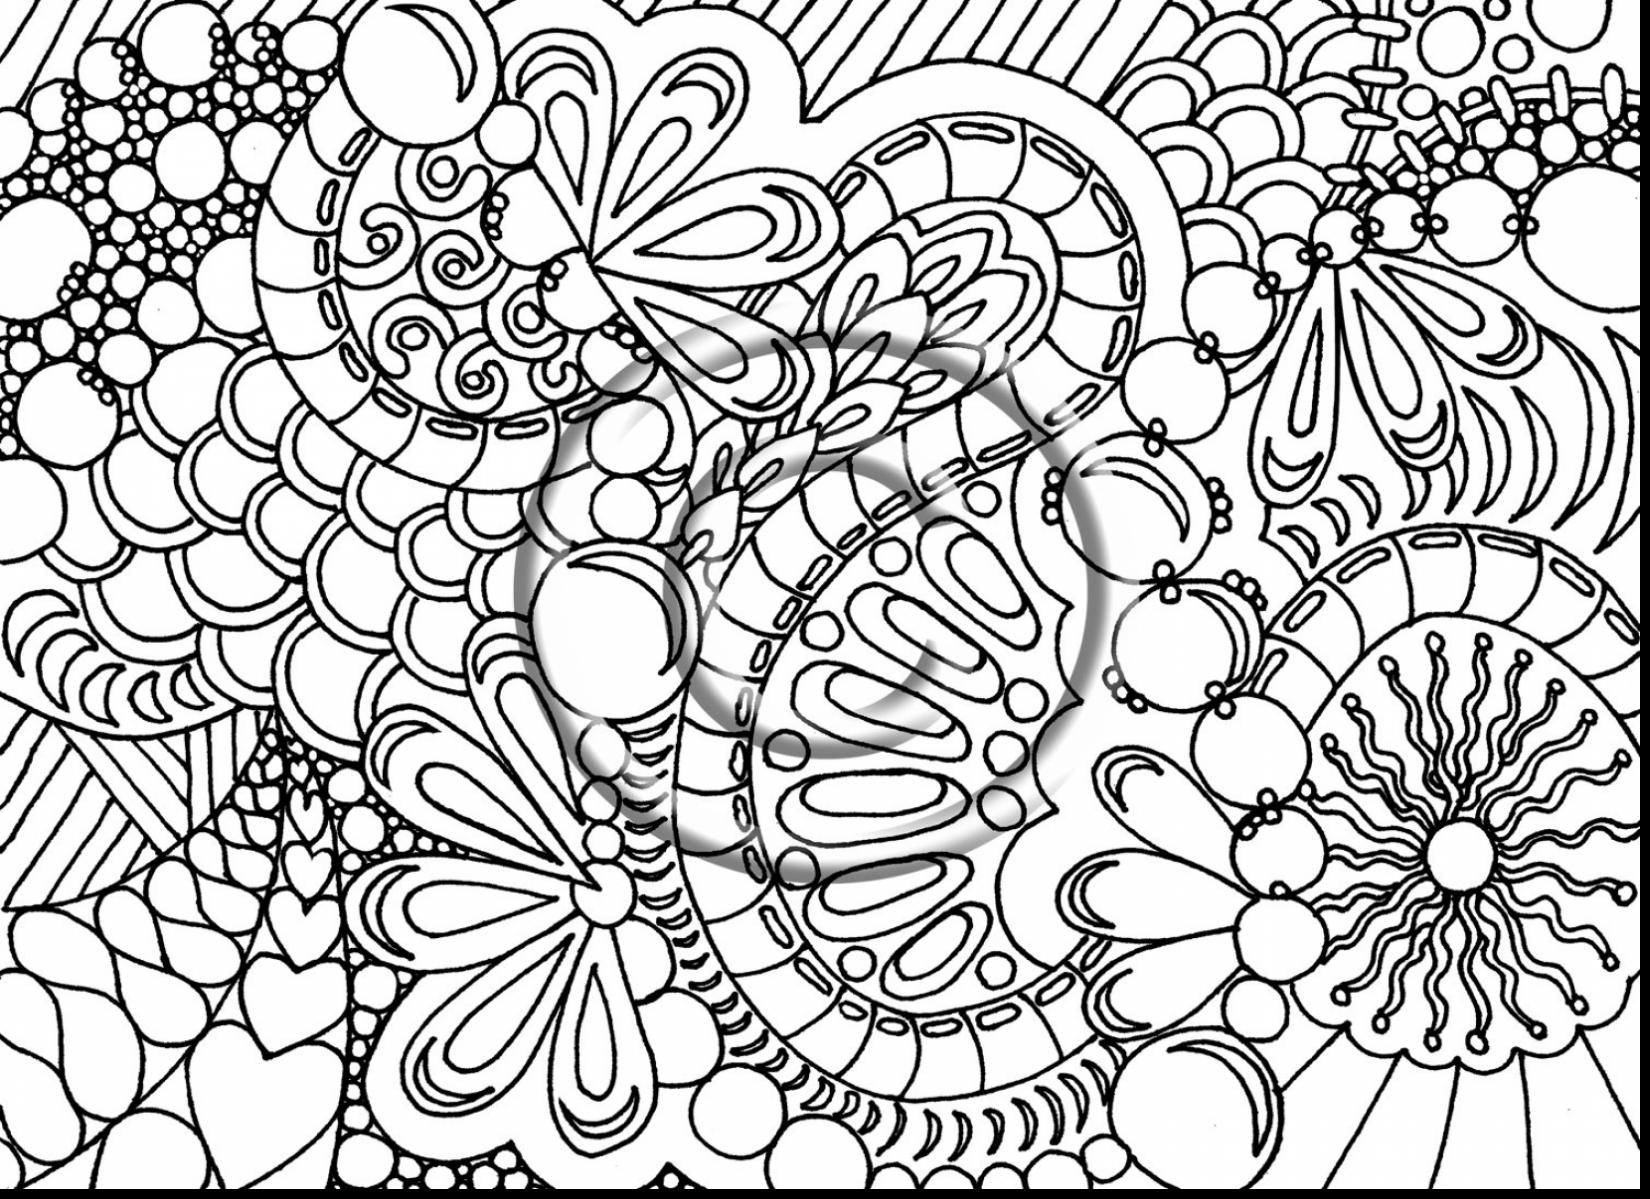 1650x1199 Cool Adult Coloring Pages With Hard Detail Of Abstract Printable